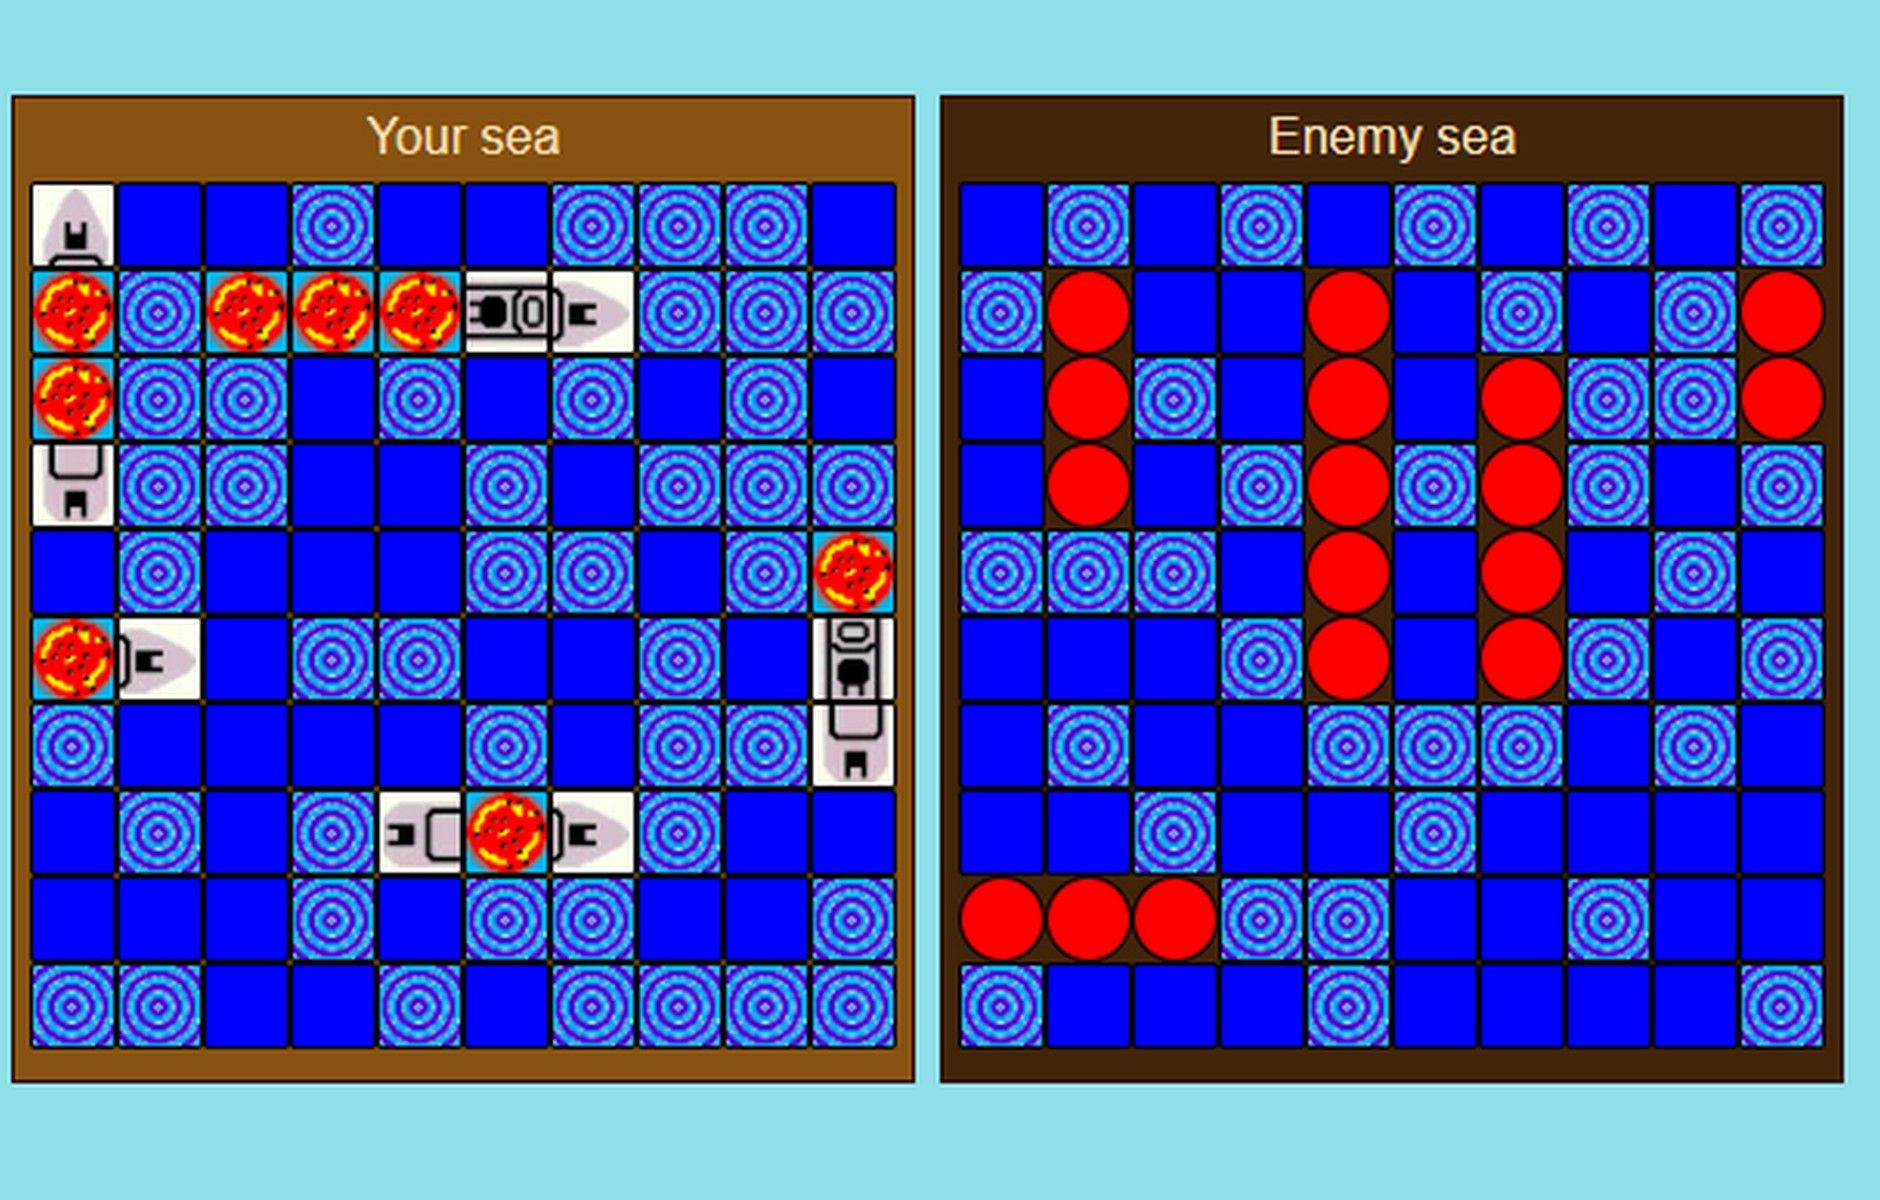 Classic Battleship Board Game Place Your Five Ships On The Grid And Try To Sink The Ships Of Your Opponent Before He Sink Games Free Pc Games Battleship Board